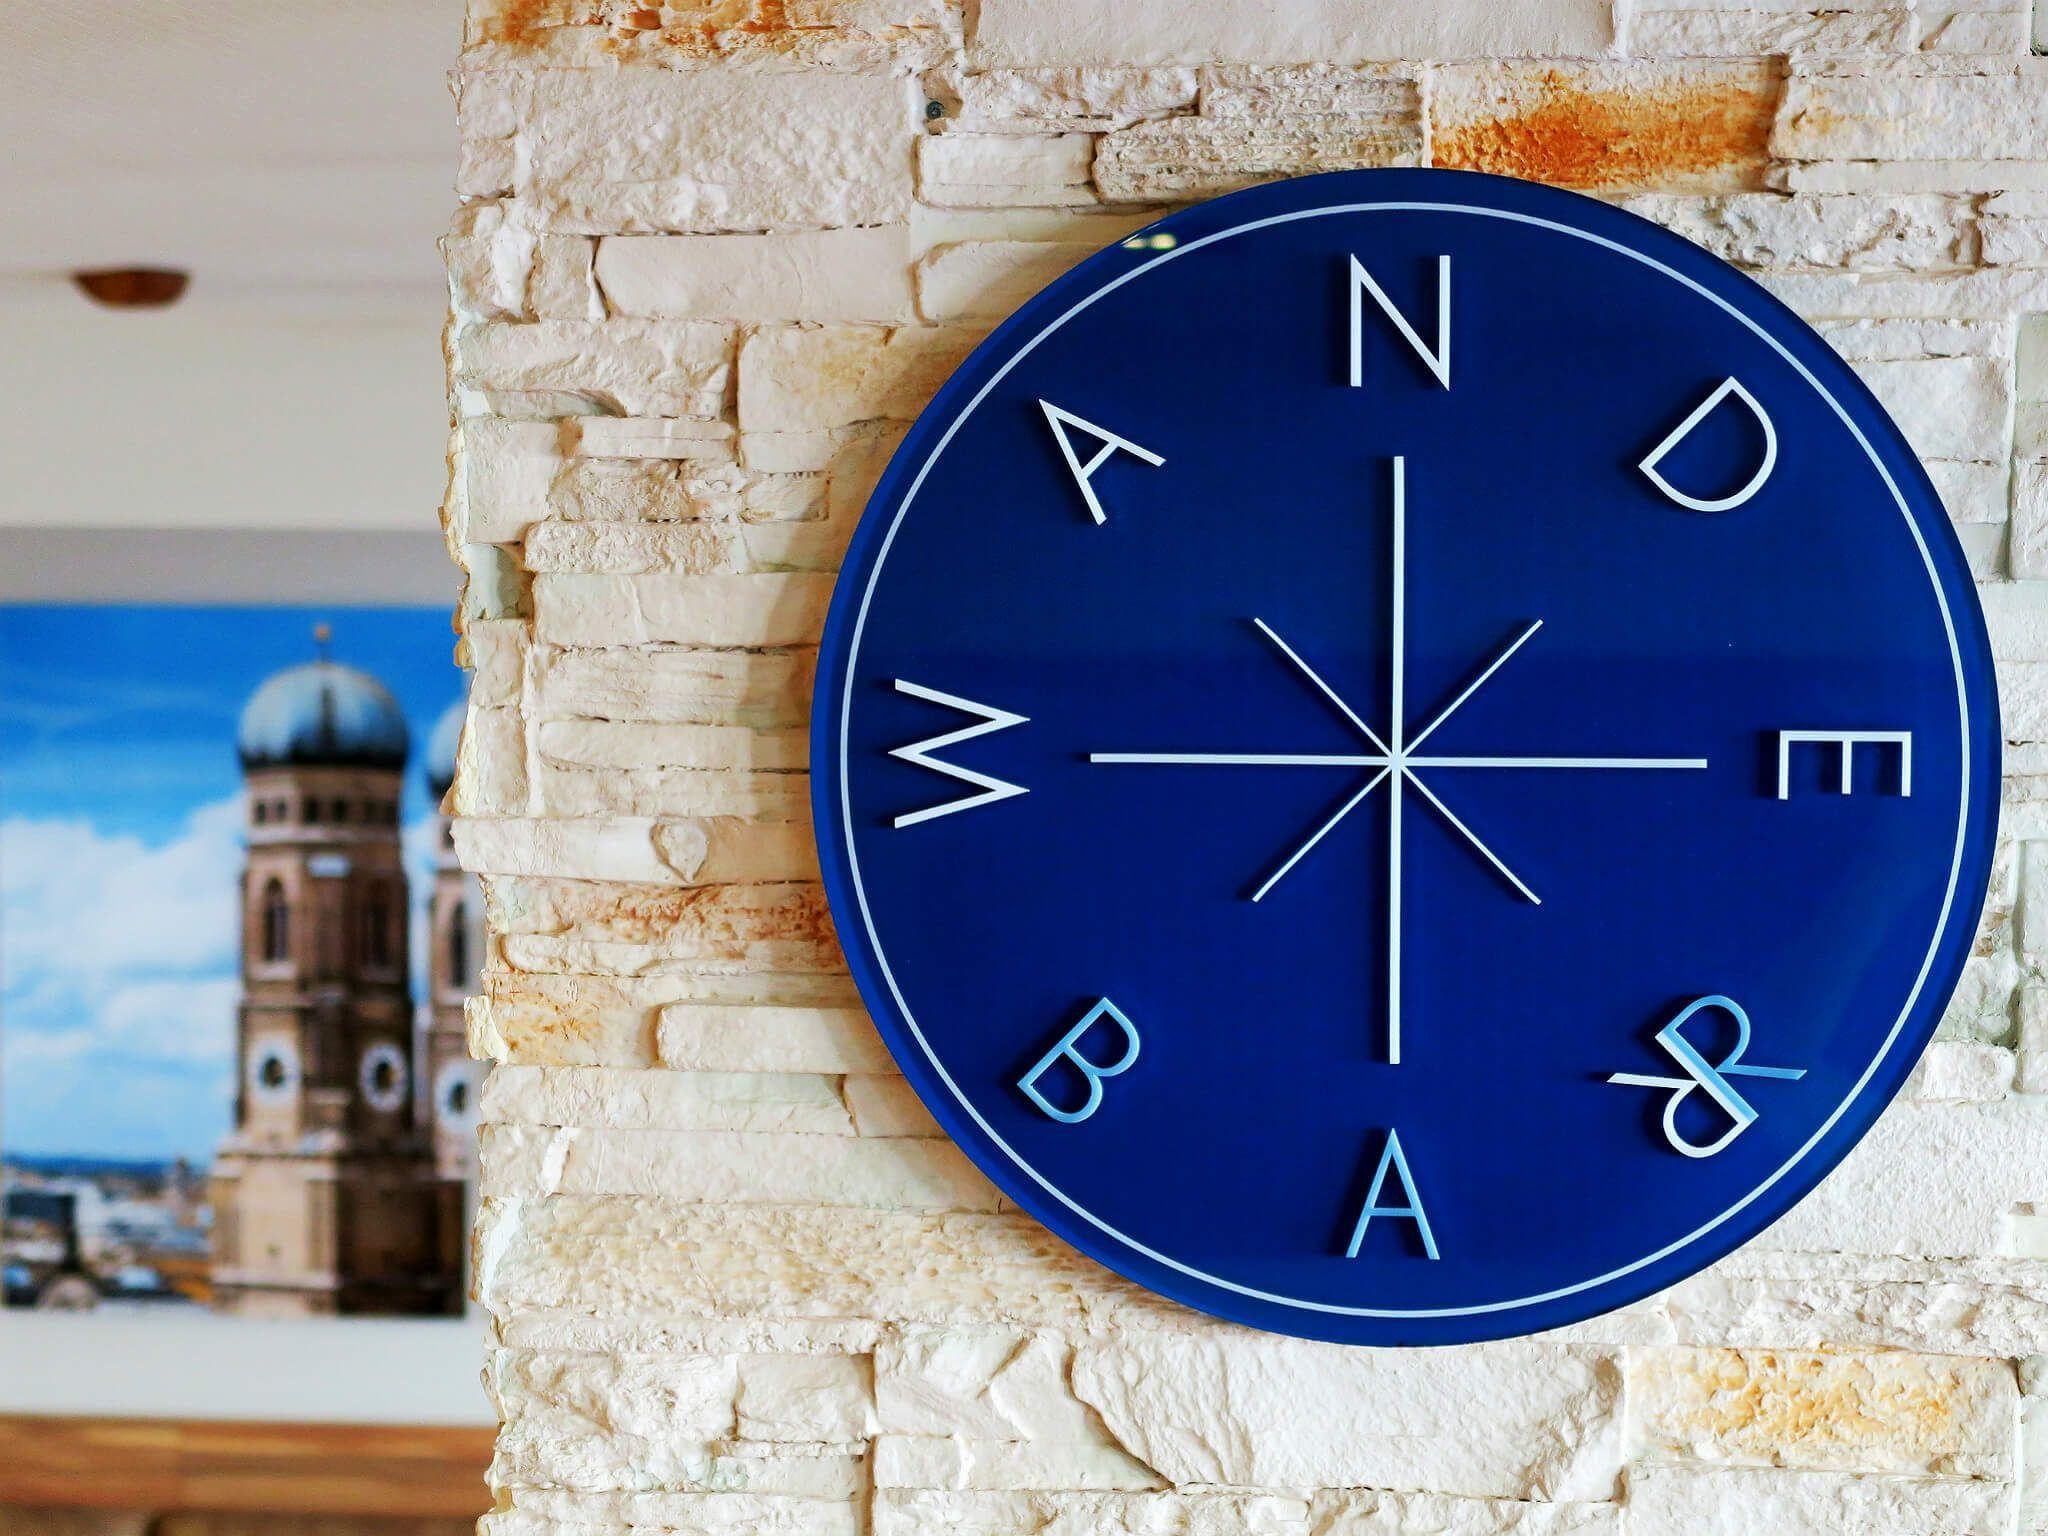 Wanderbar logo - Four Points by Sheraton Munich Central